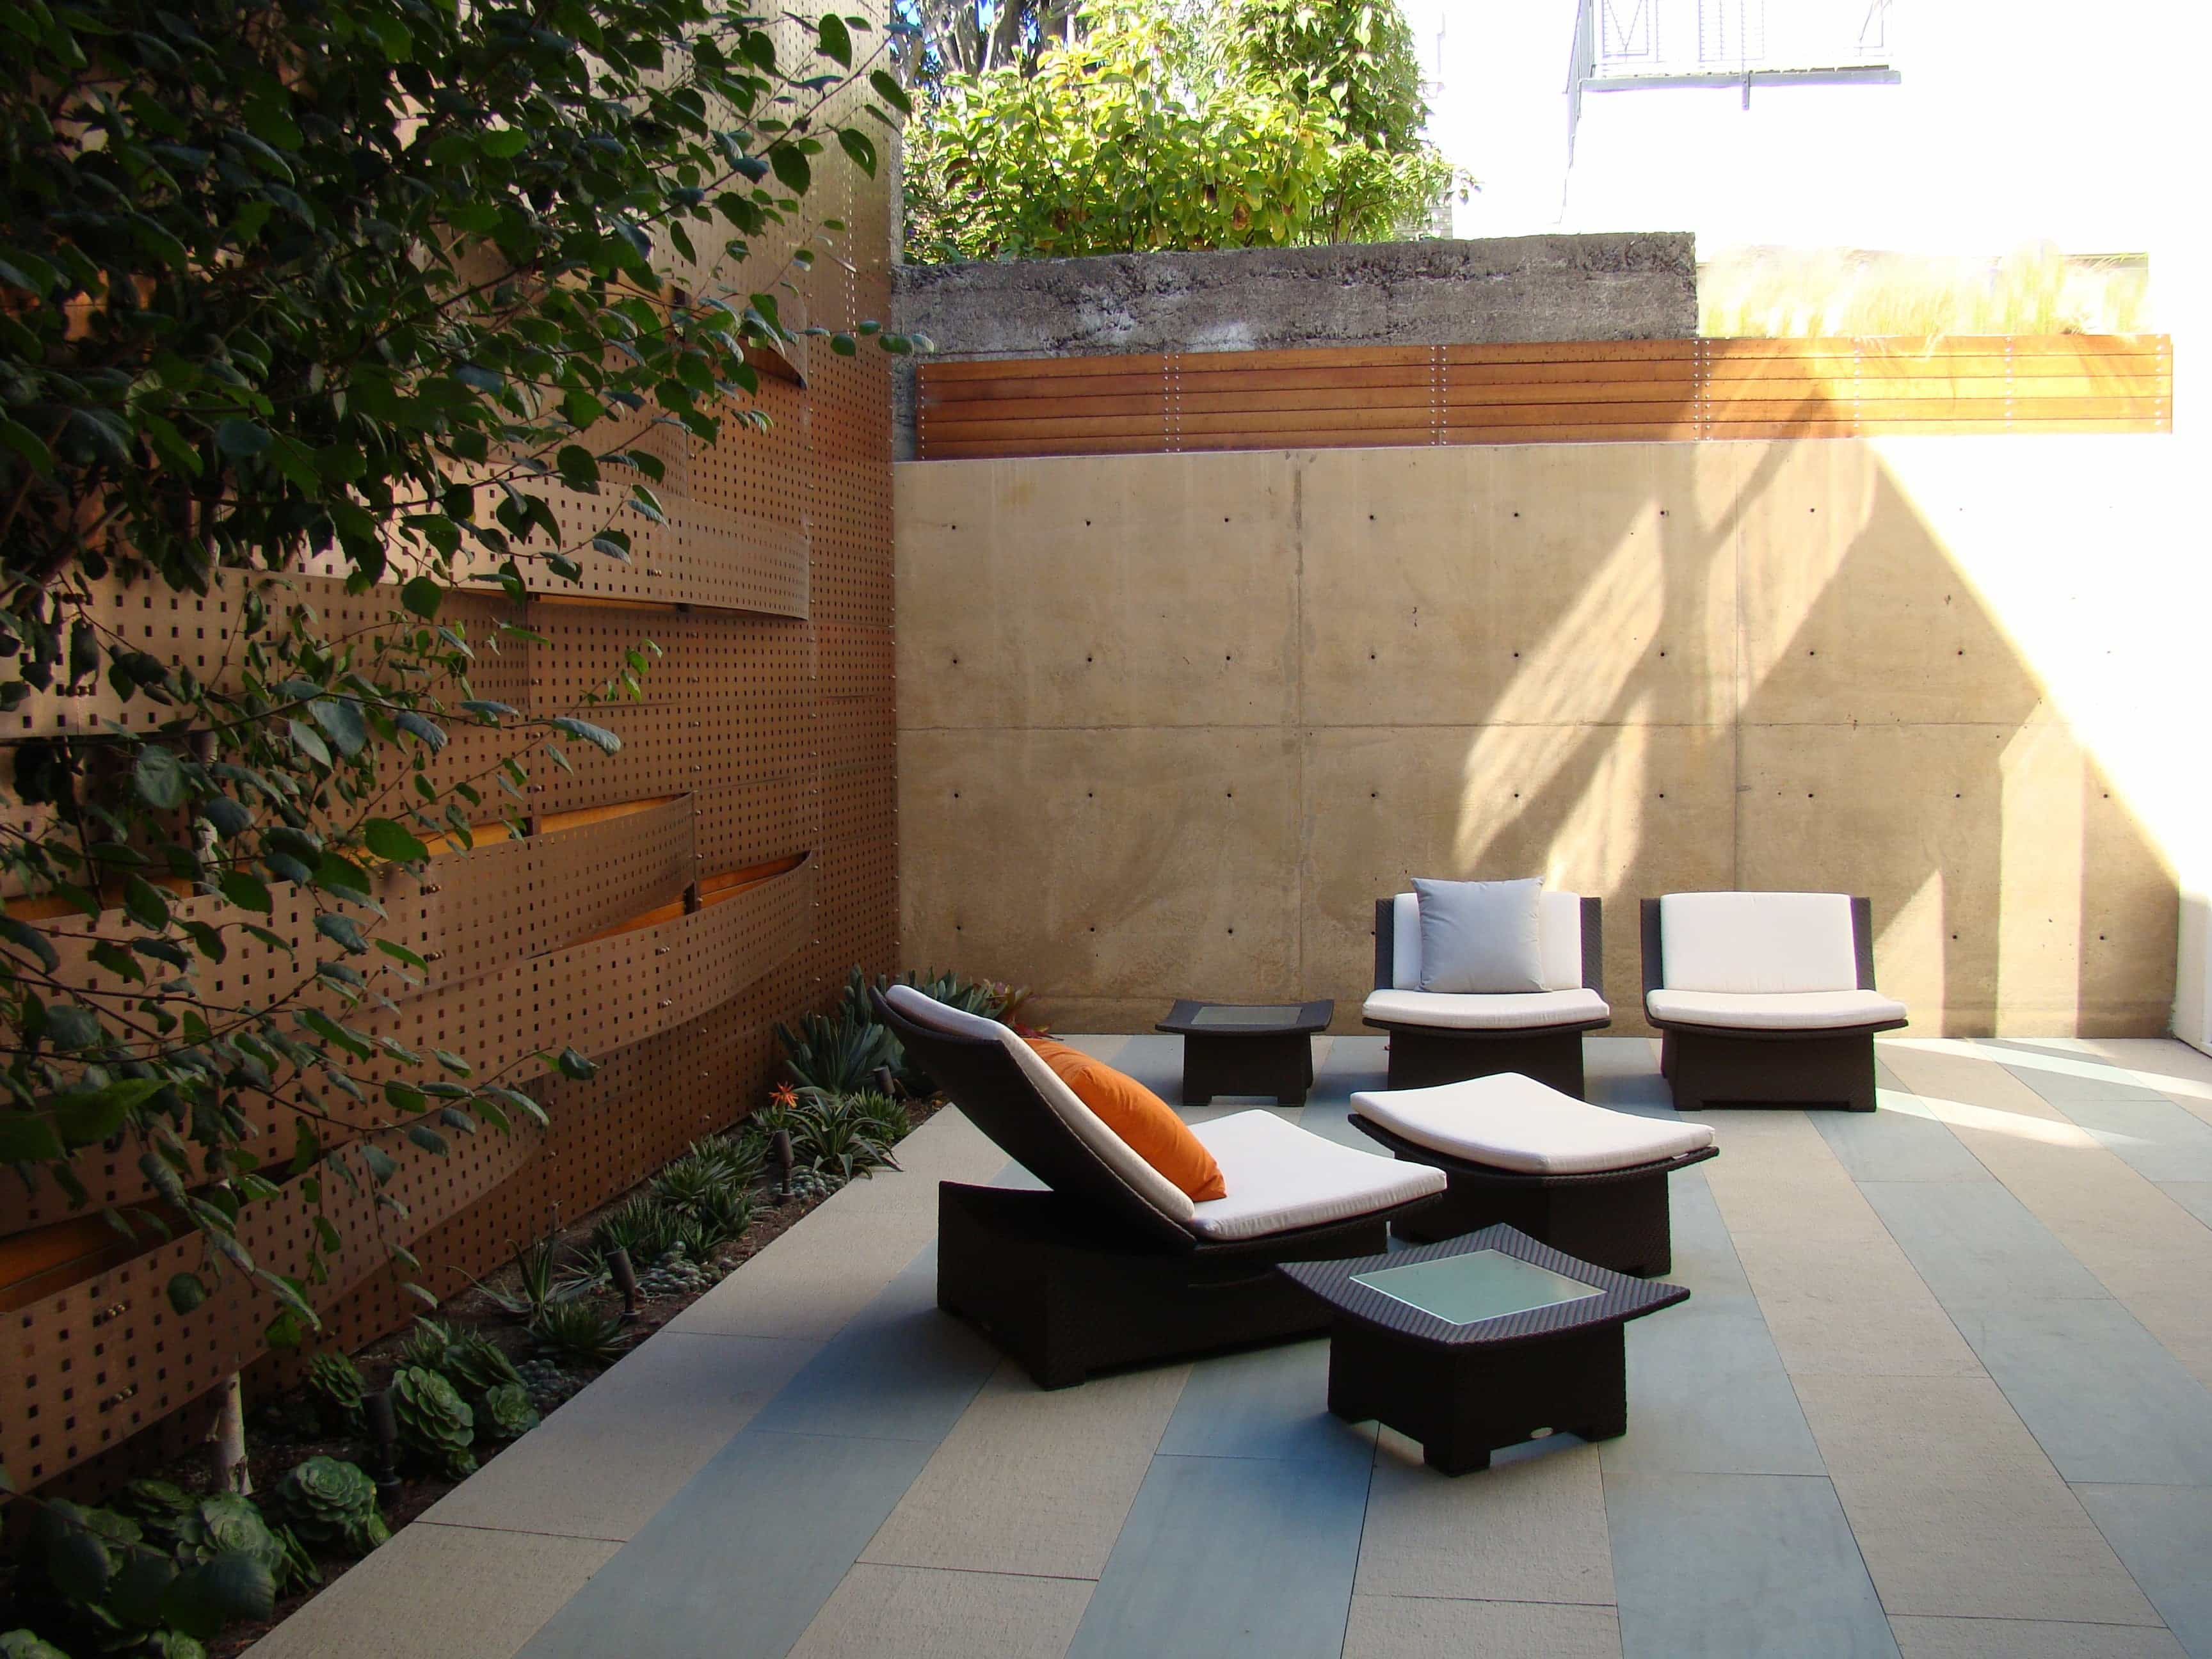 Featured Image of White Cushioning And Textured Retaining Walls Asian Patio Design